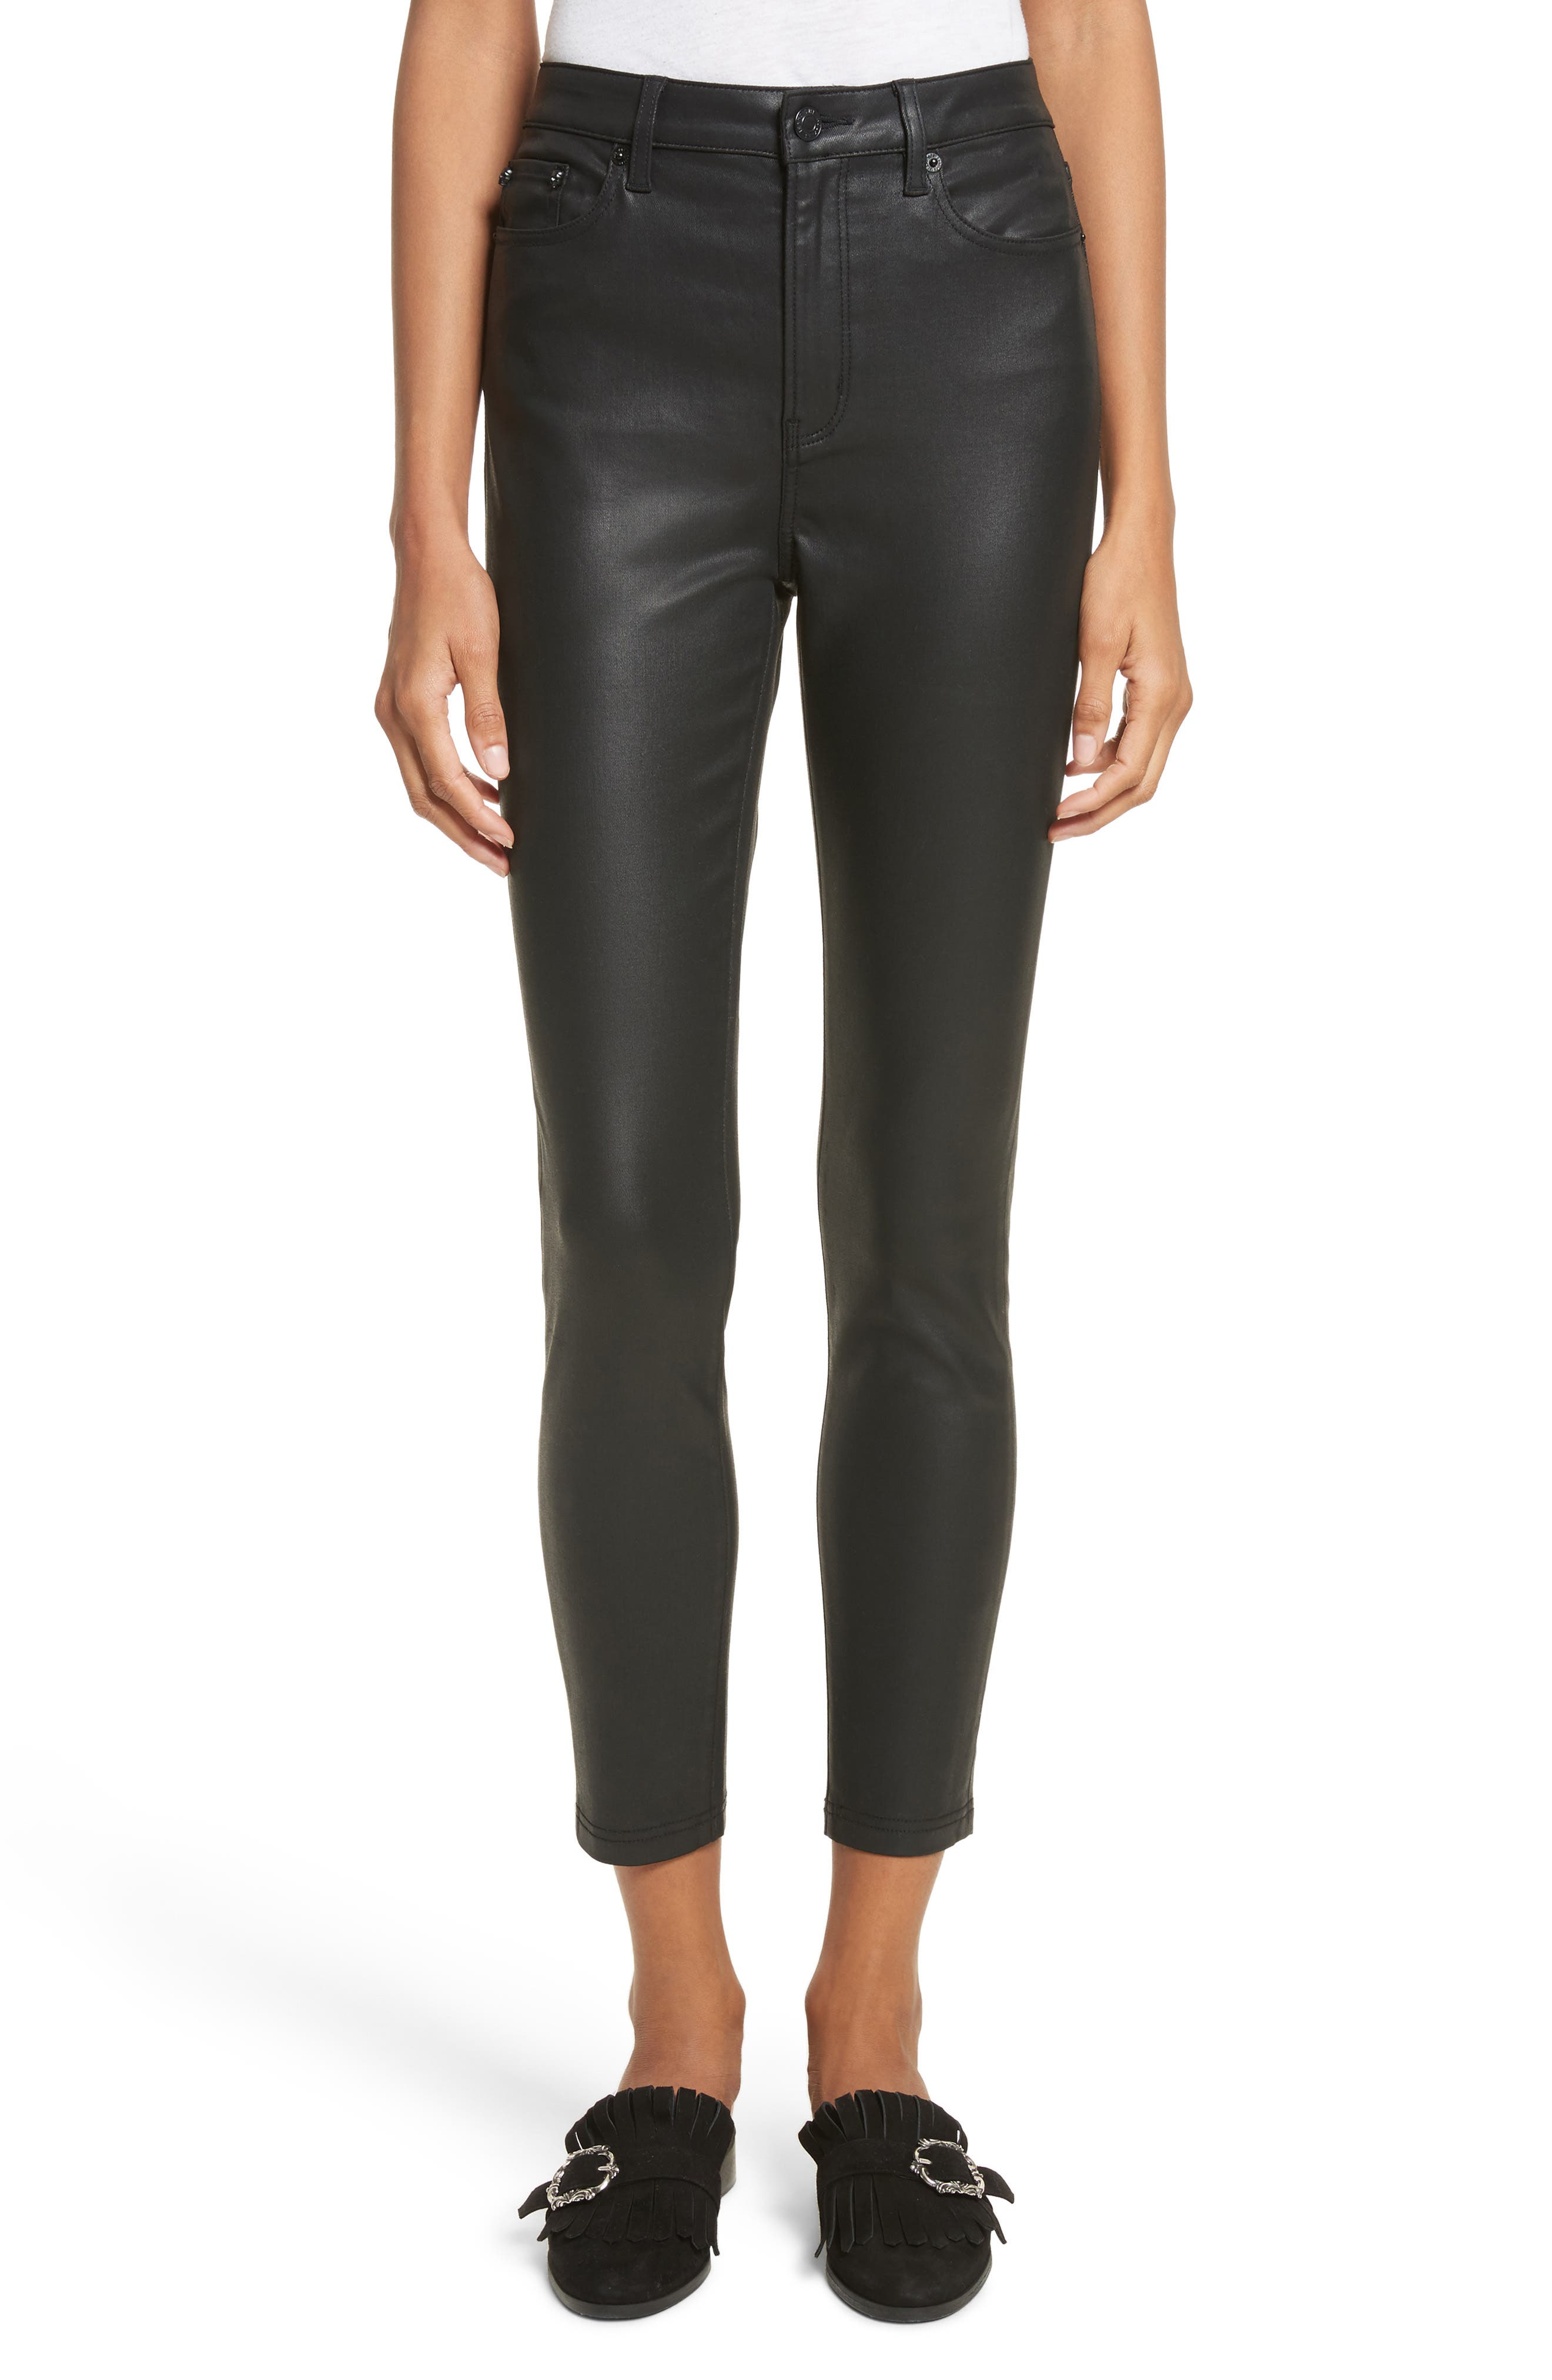 Alternate Image 1 Selected - The Kooples Coated Stretch Ankle Skinny Jeans